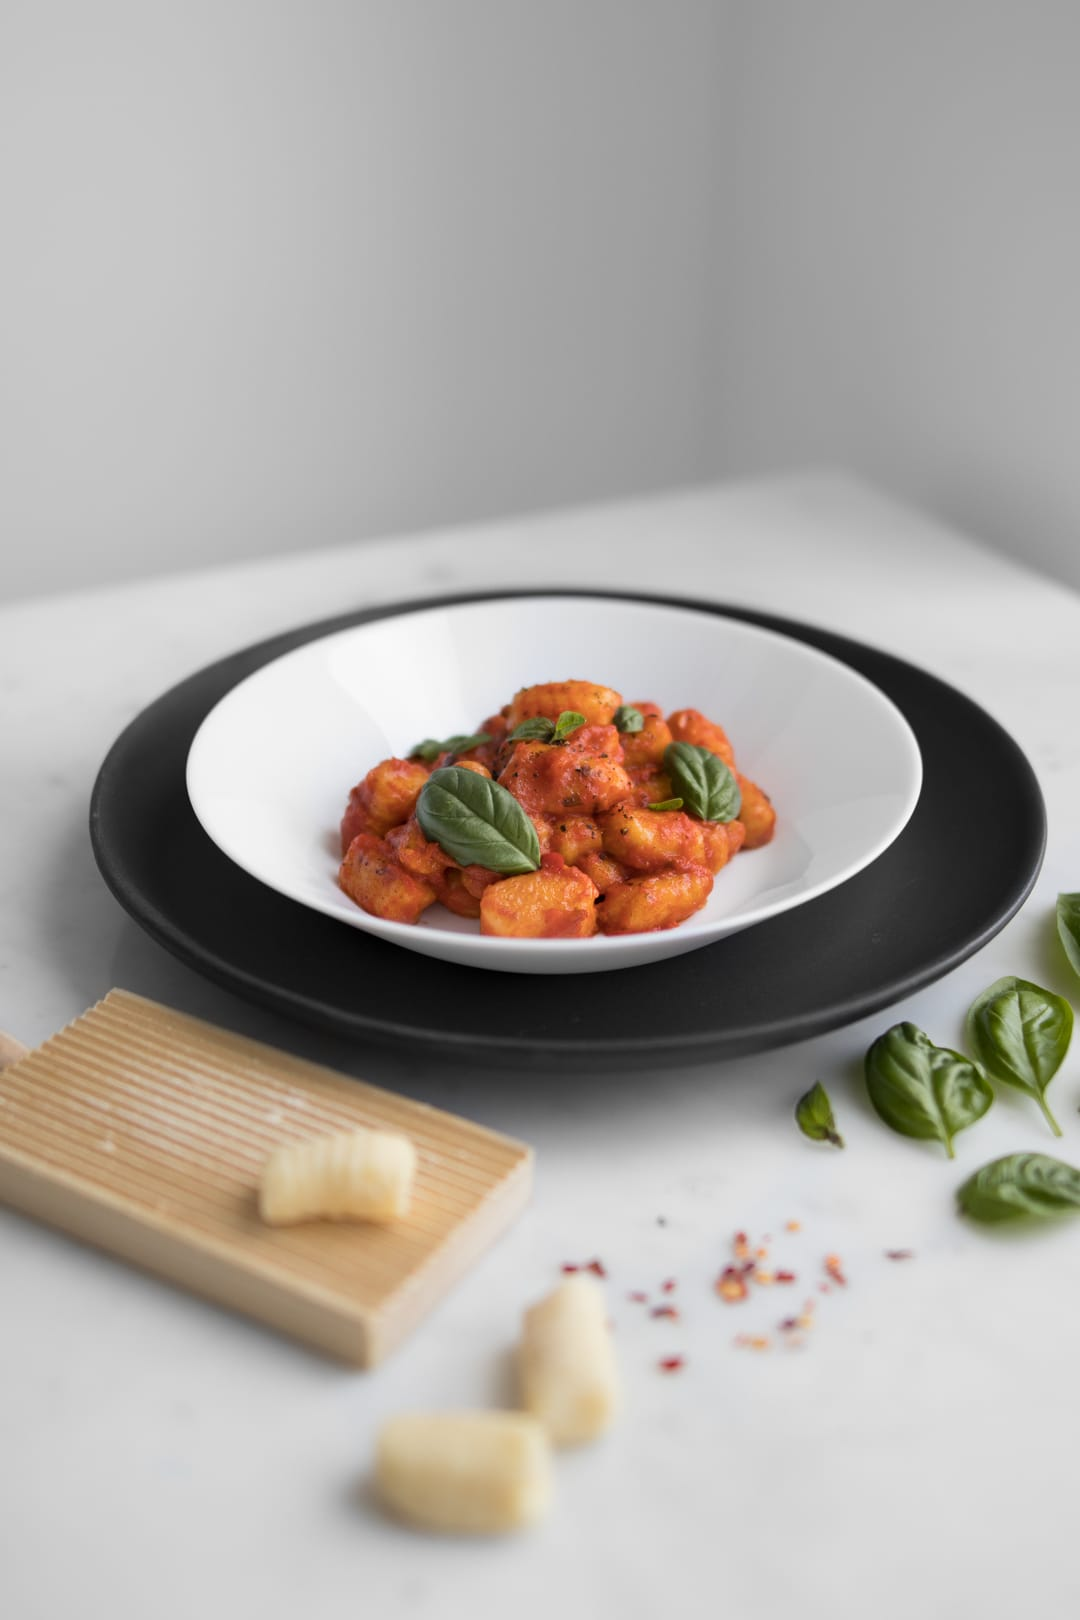 Gluten-free gnocchi with tomato sauce in a white bowl, on top of a black plate. Uncooked gnocchi and basil are placed around the plate. Get the recipe at chefsouschef.com